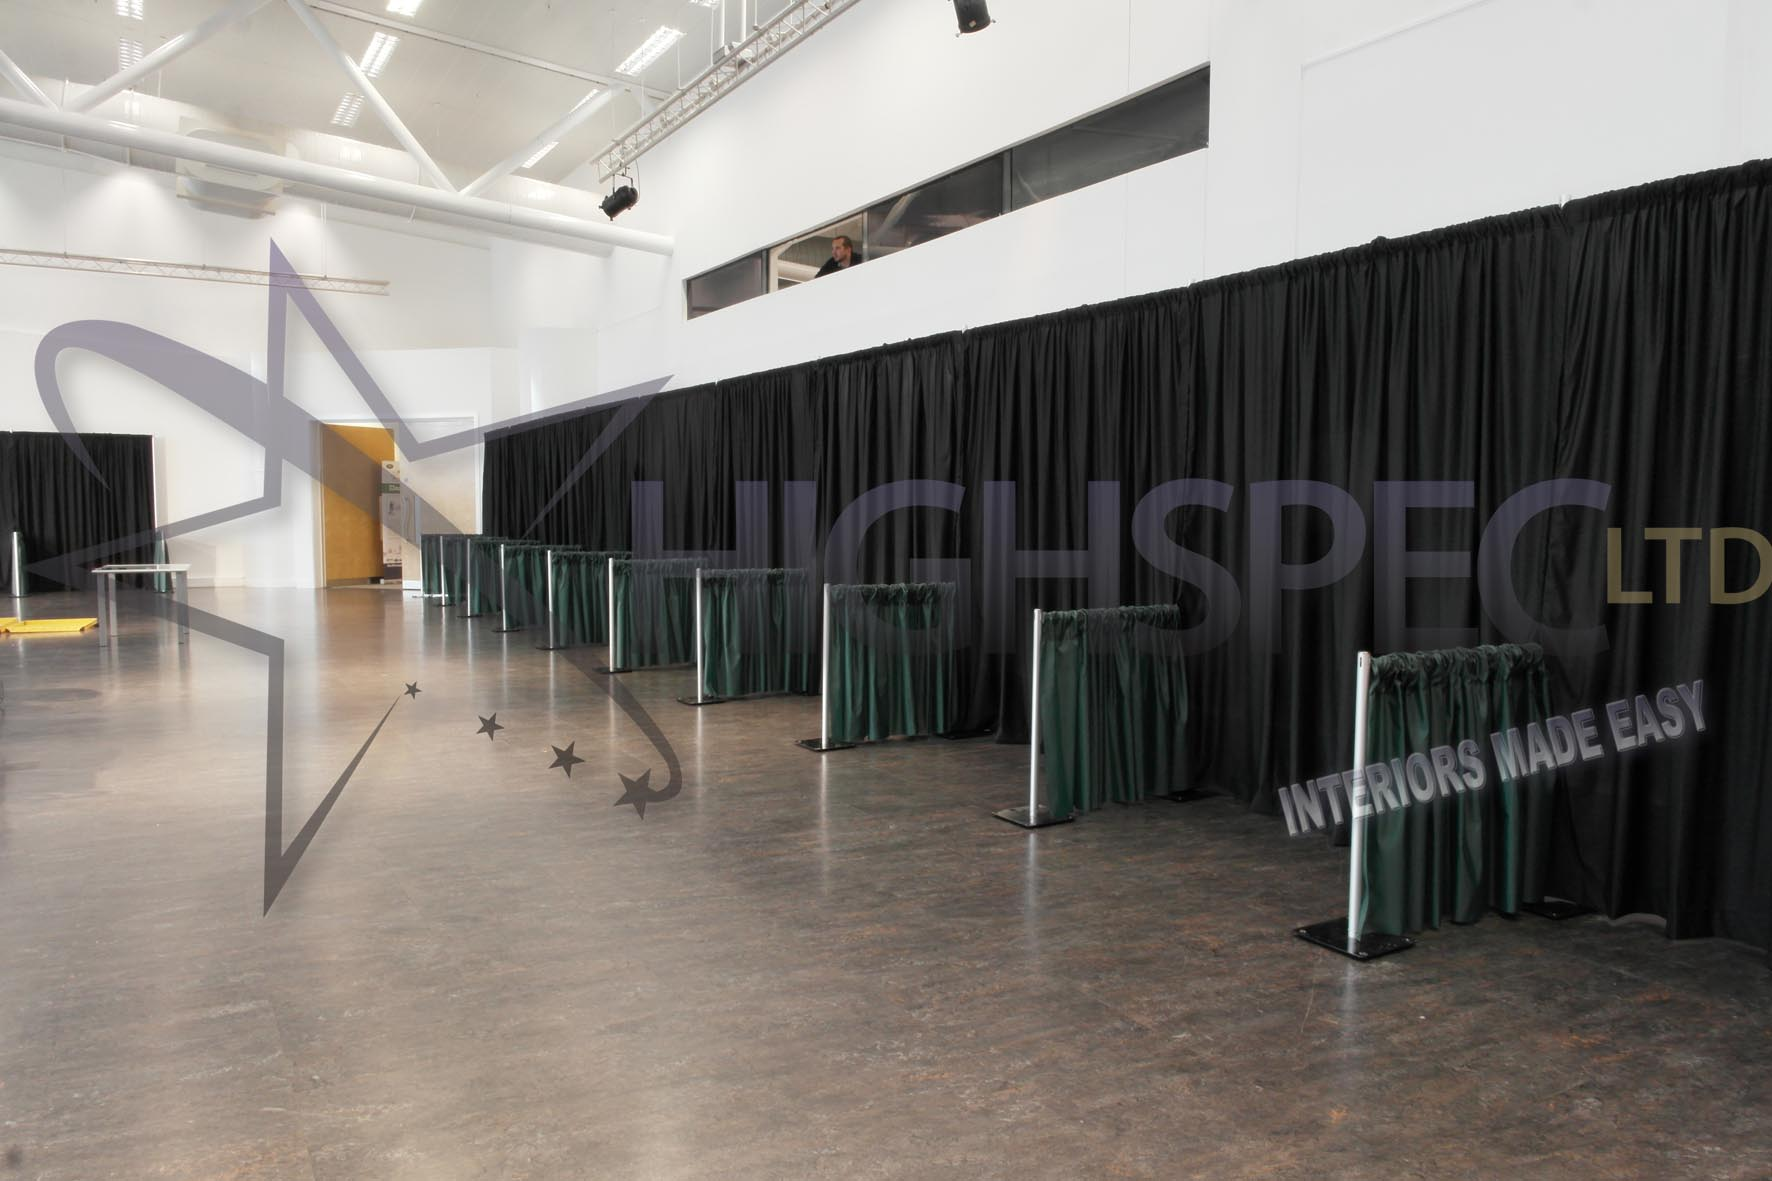 Exhibition Booth Draping